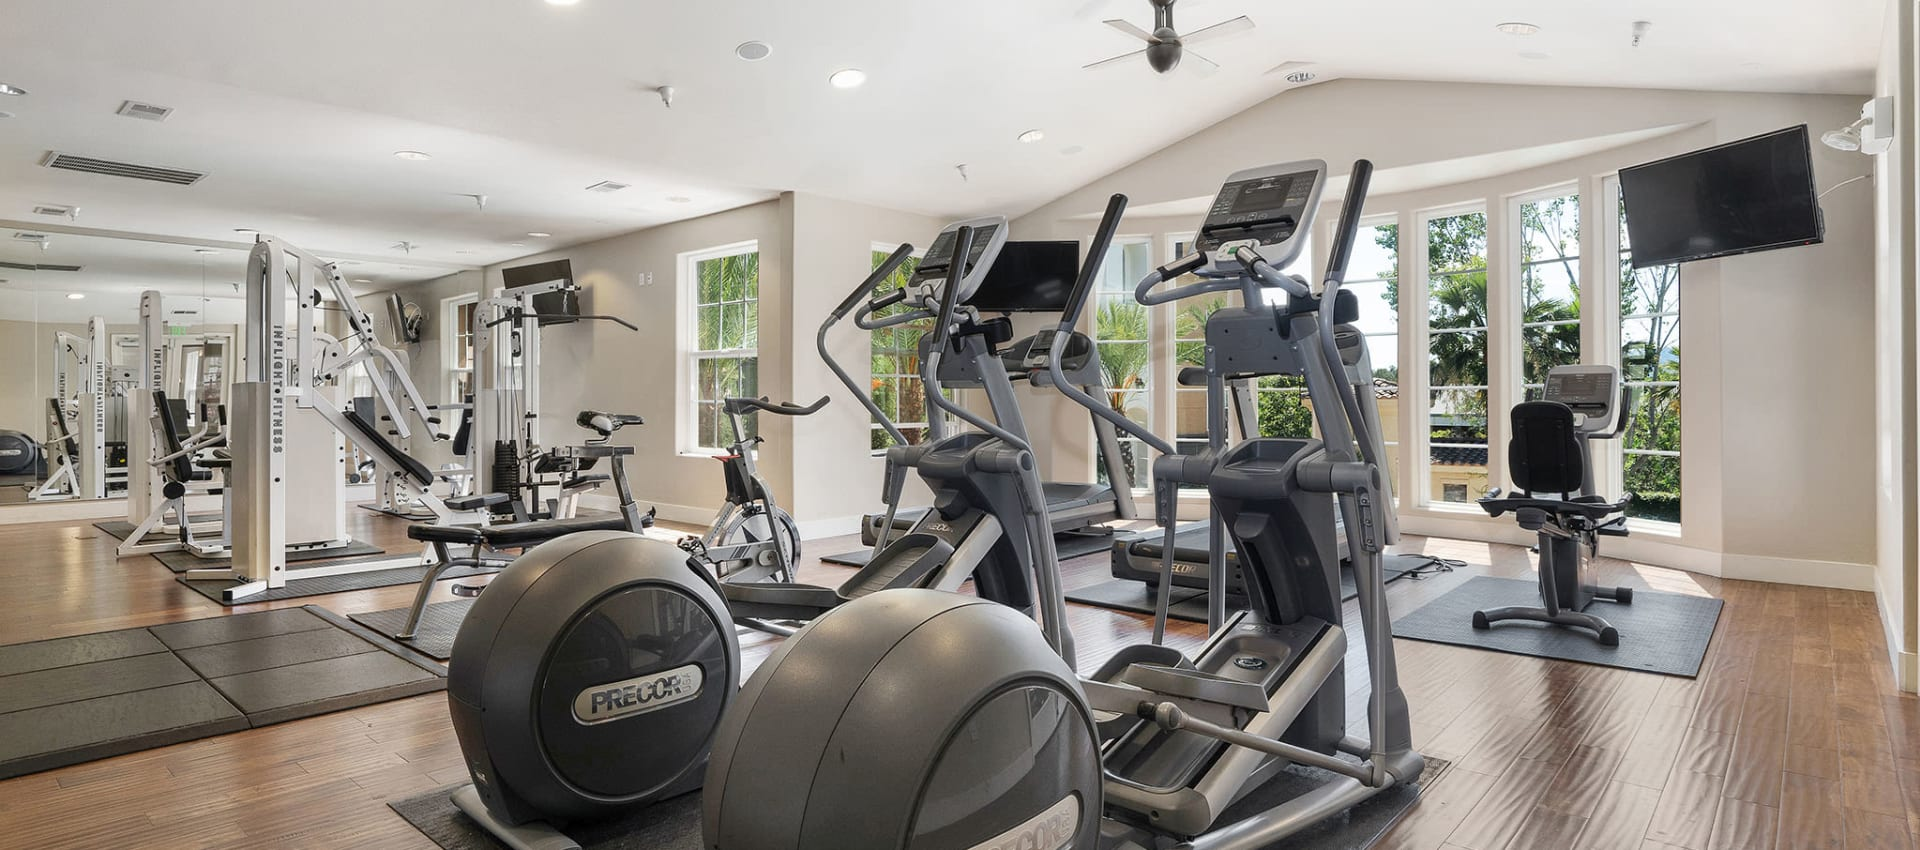 Expansive Fitness Center at Park Central in Concord, California